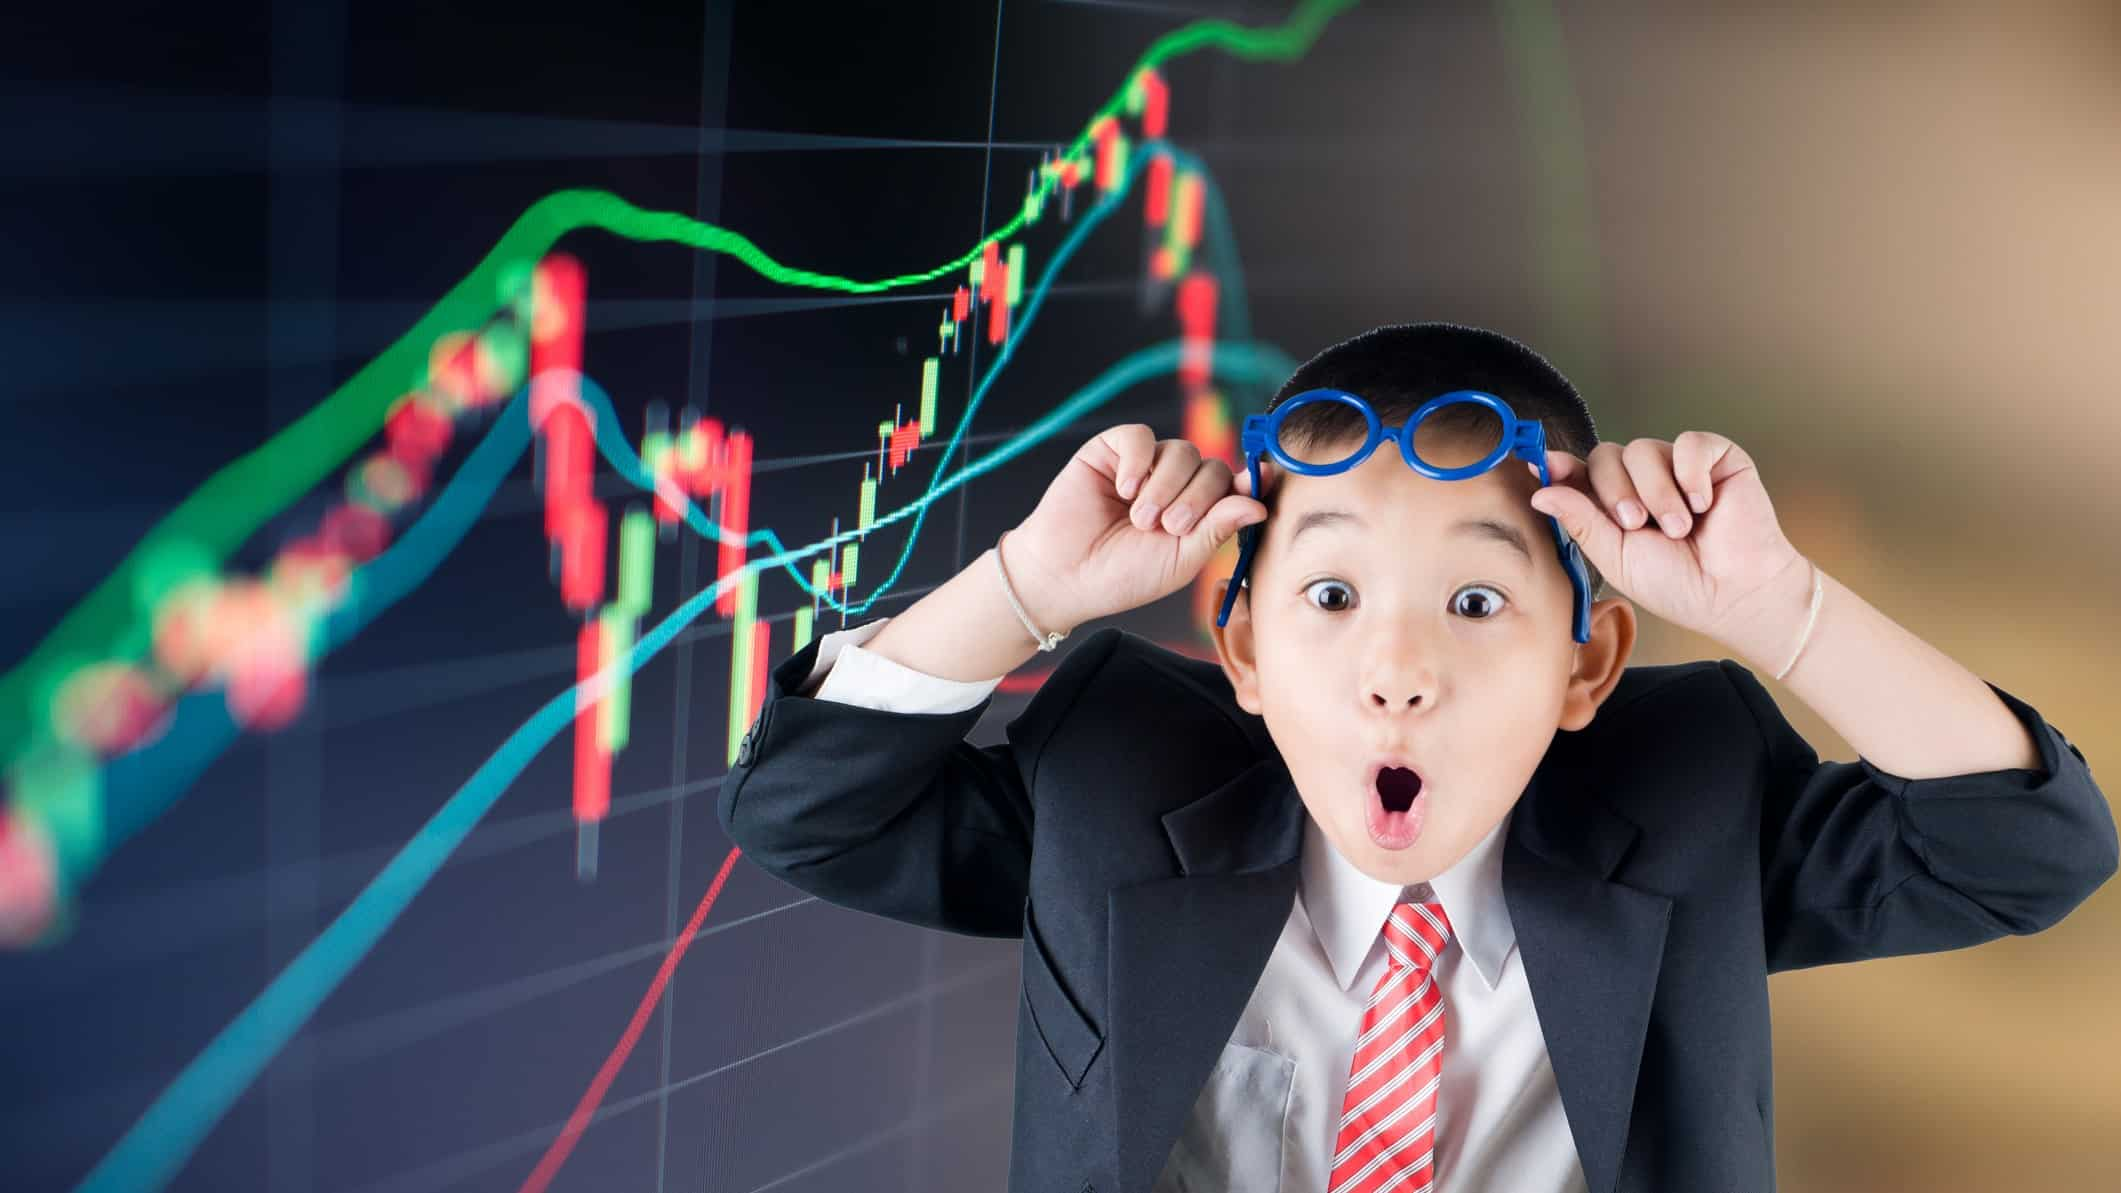 Young boy looks shocked as he lifts glasses above his eye in front of a stockmarket graph.